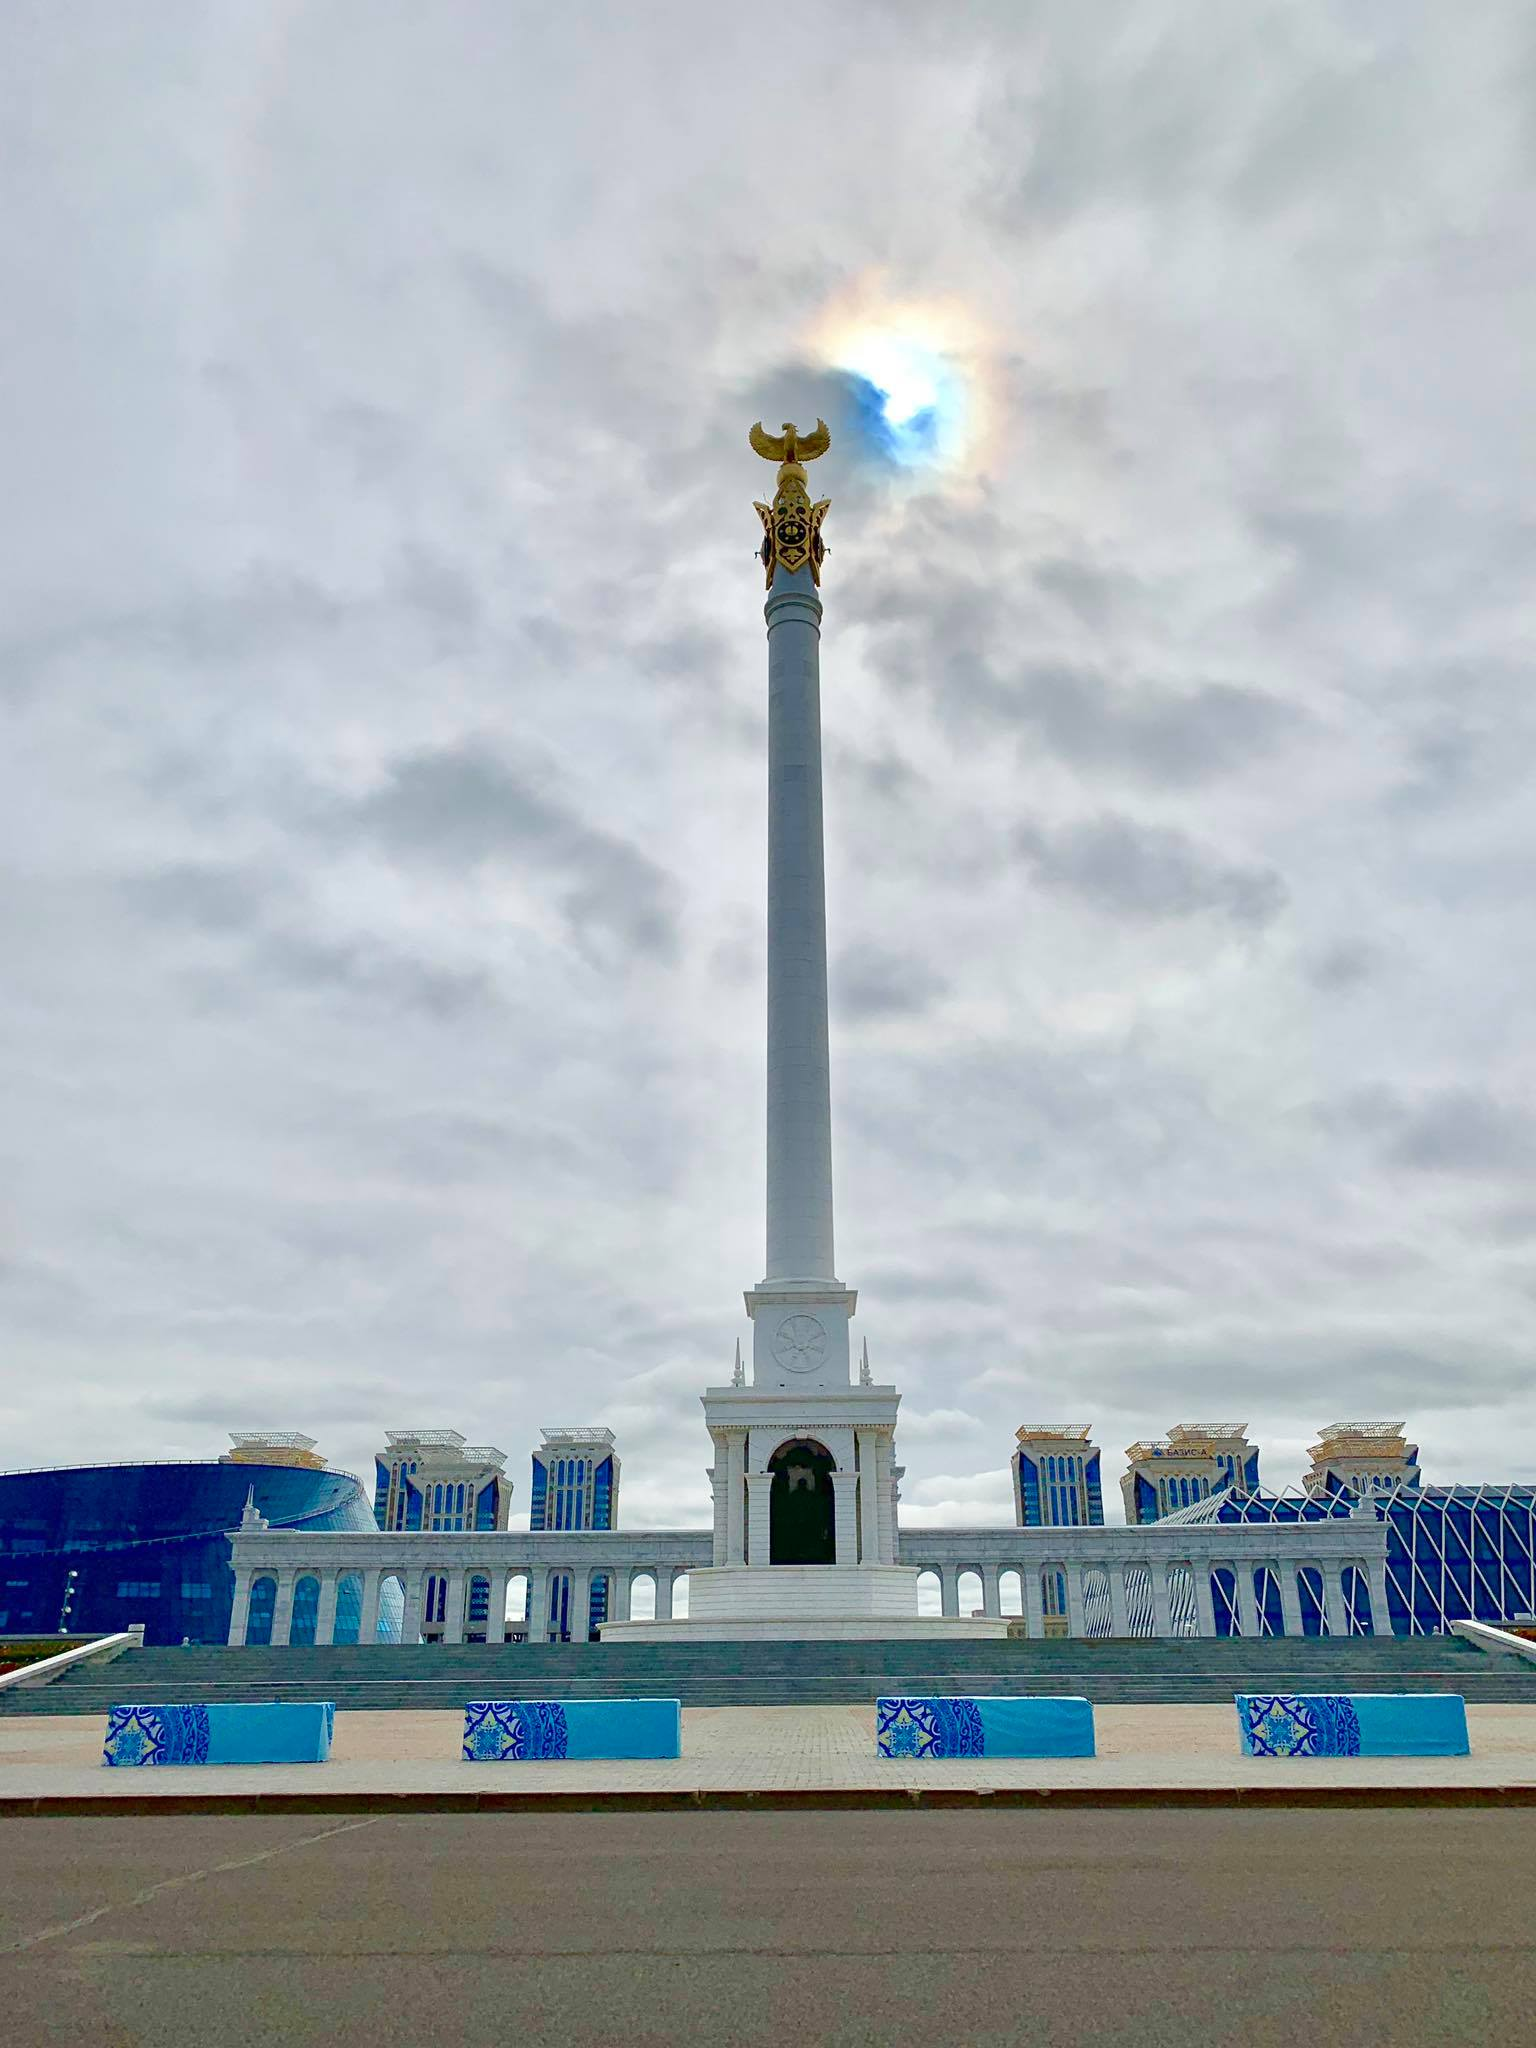 Kach Solo Travels in 2019 Nursultan  Astana - the City of the Future32.jpg